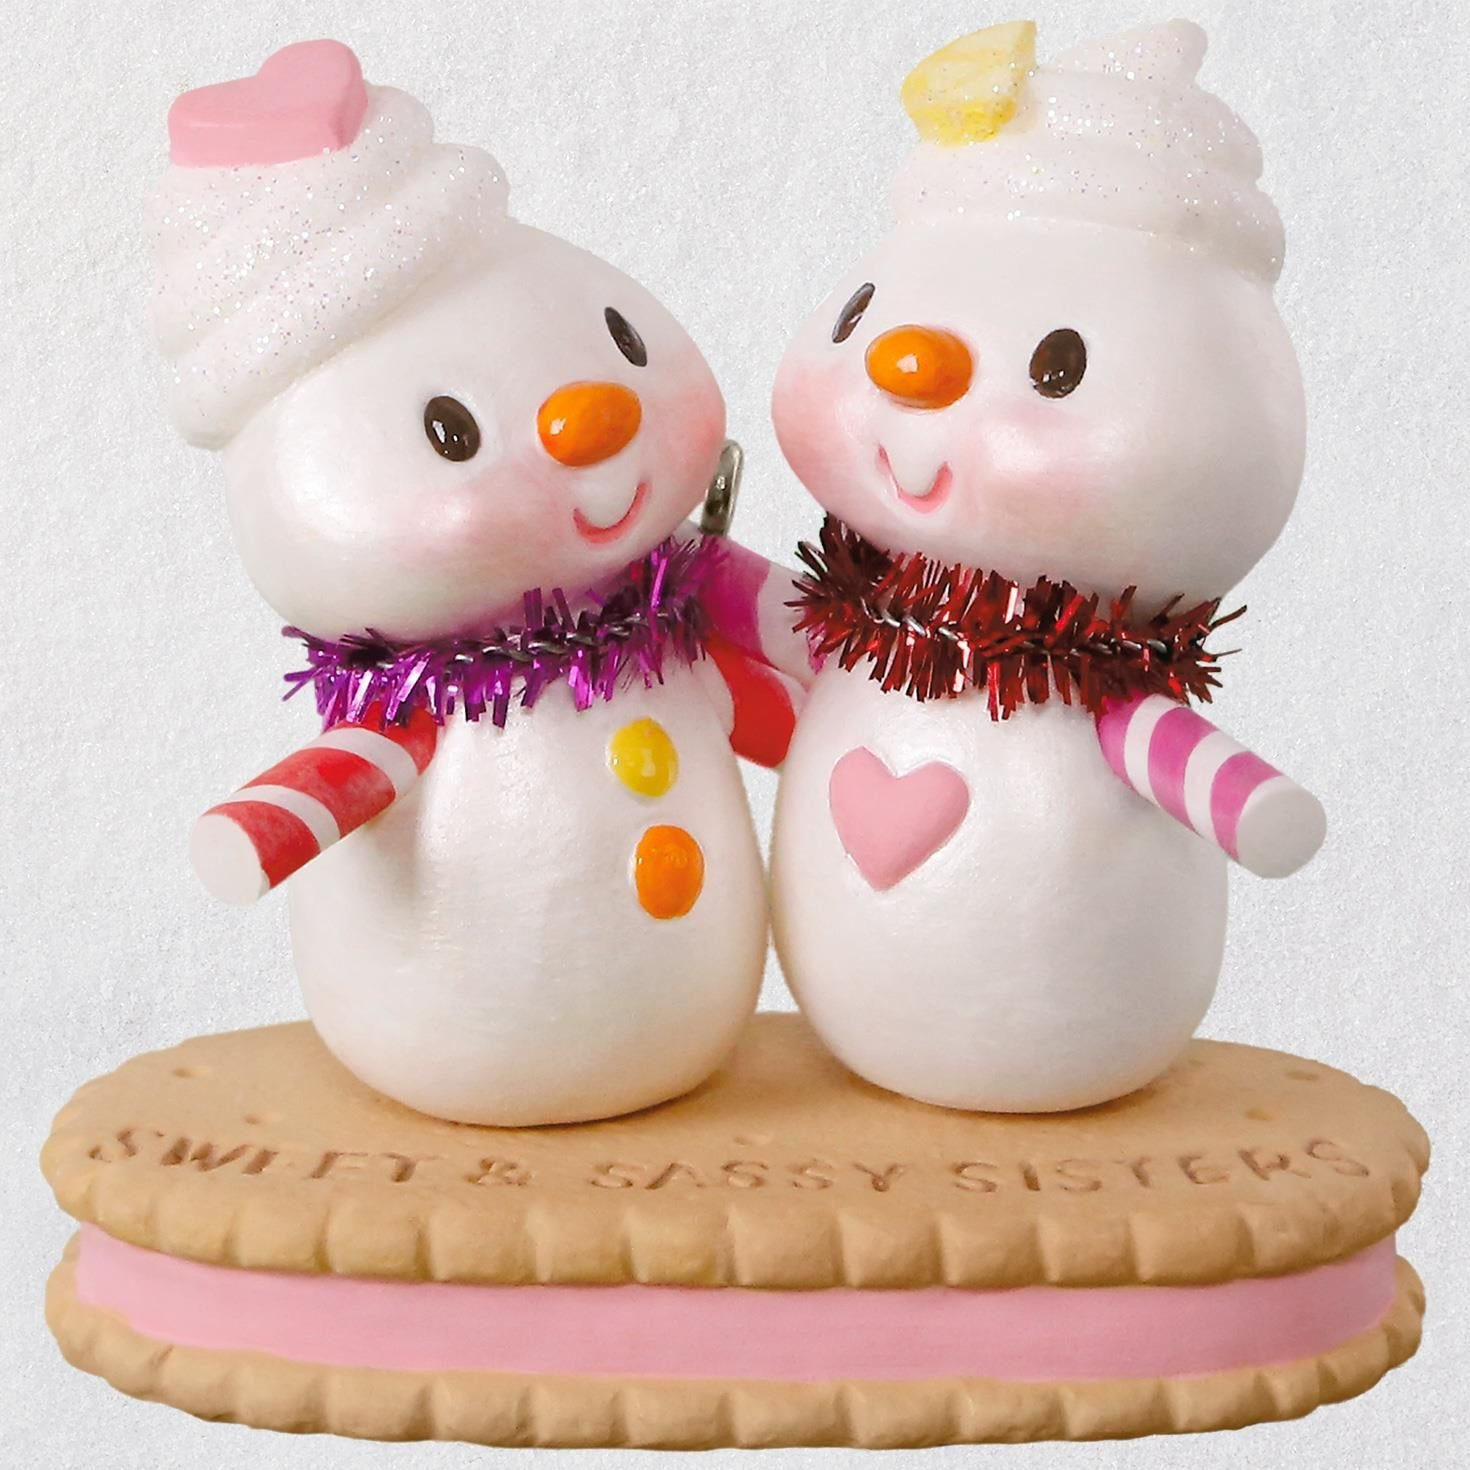 Hallmark Christmas Ornament Keepsake 2018 Year Dated, Sweet and Sassy, Sisters